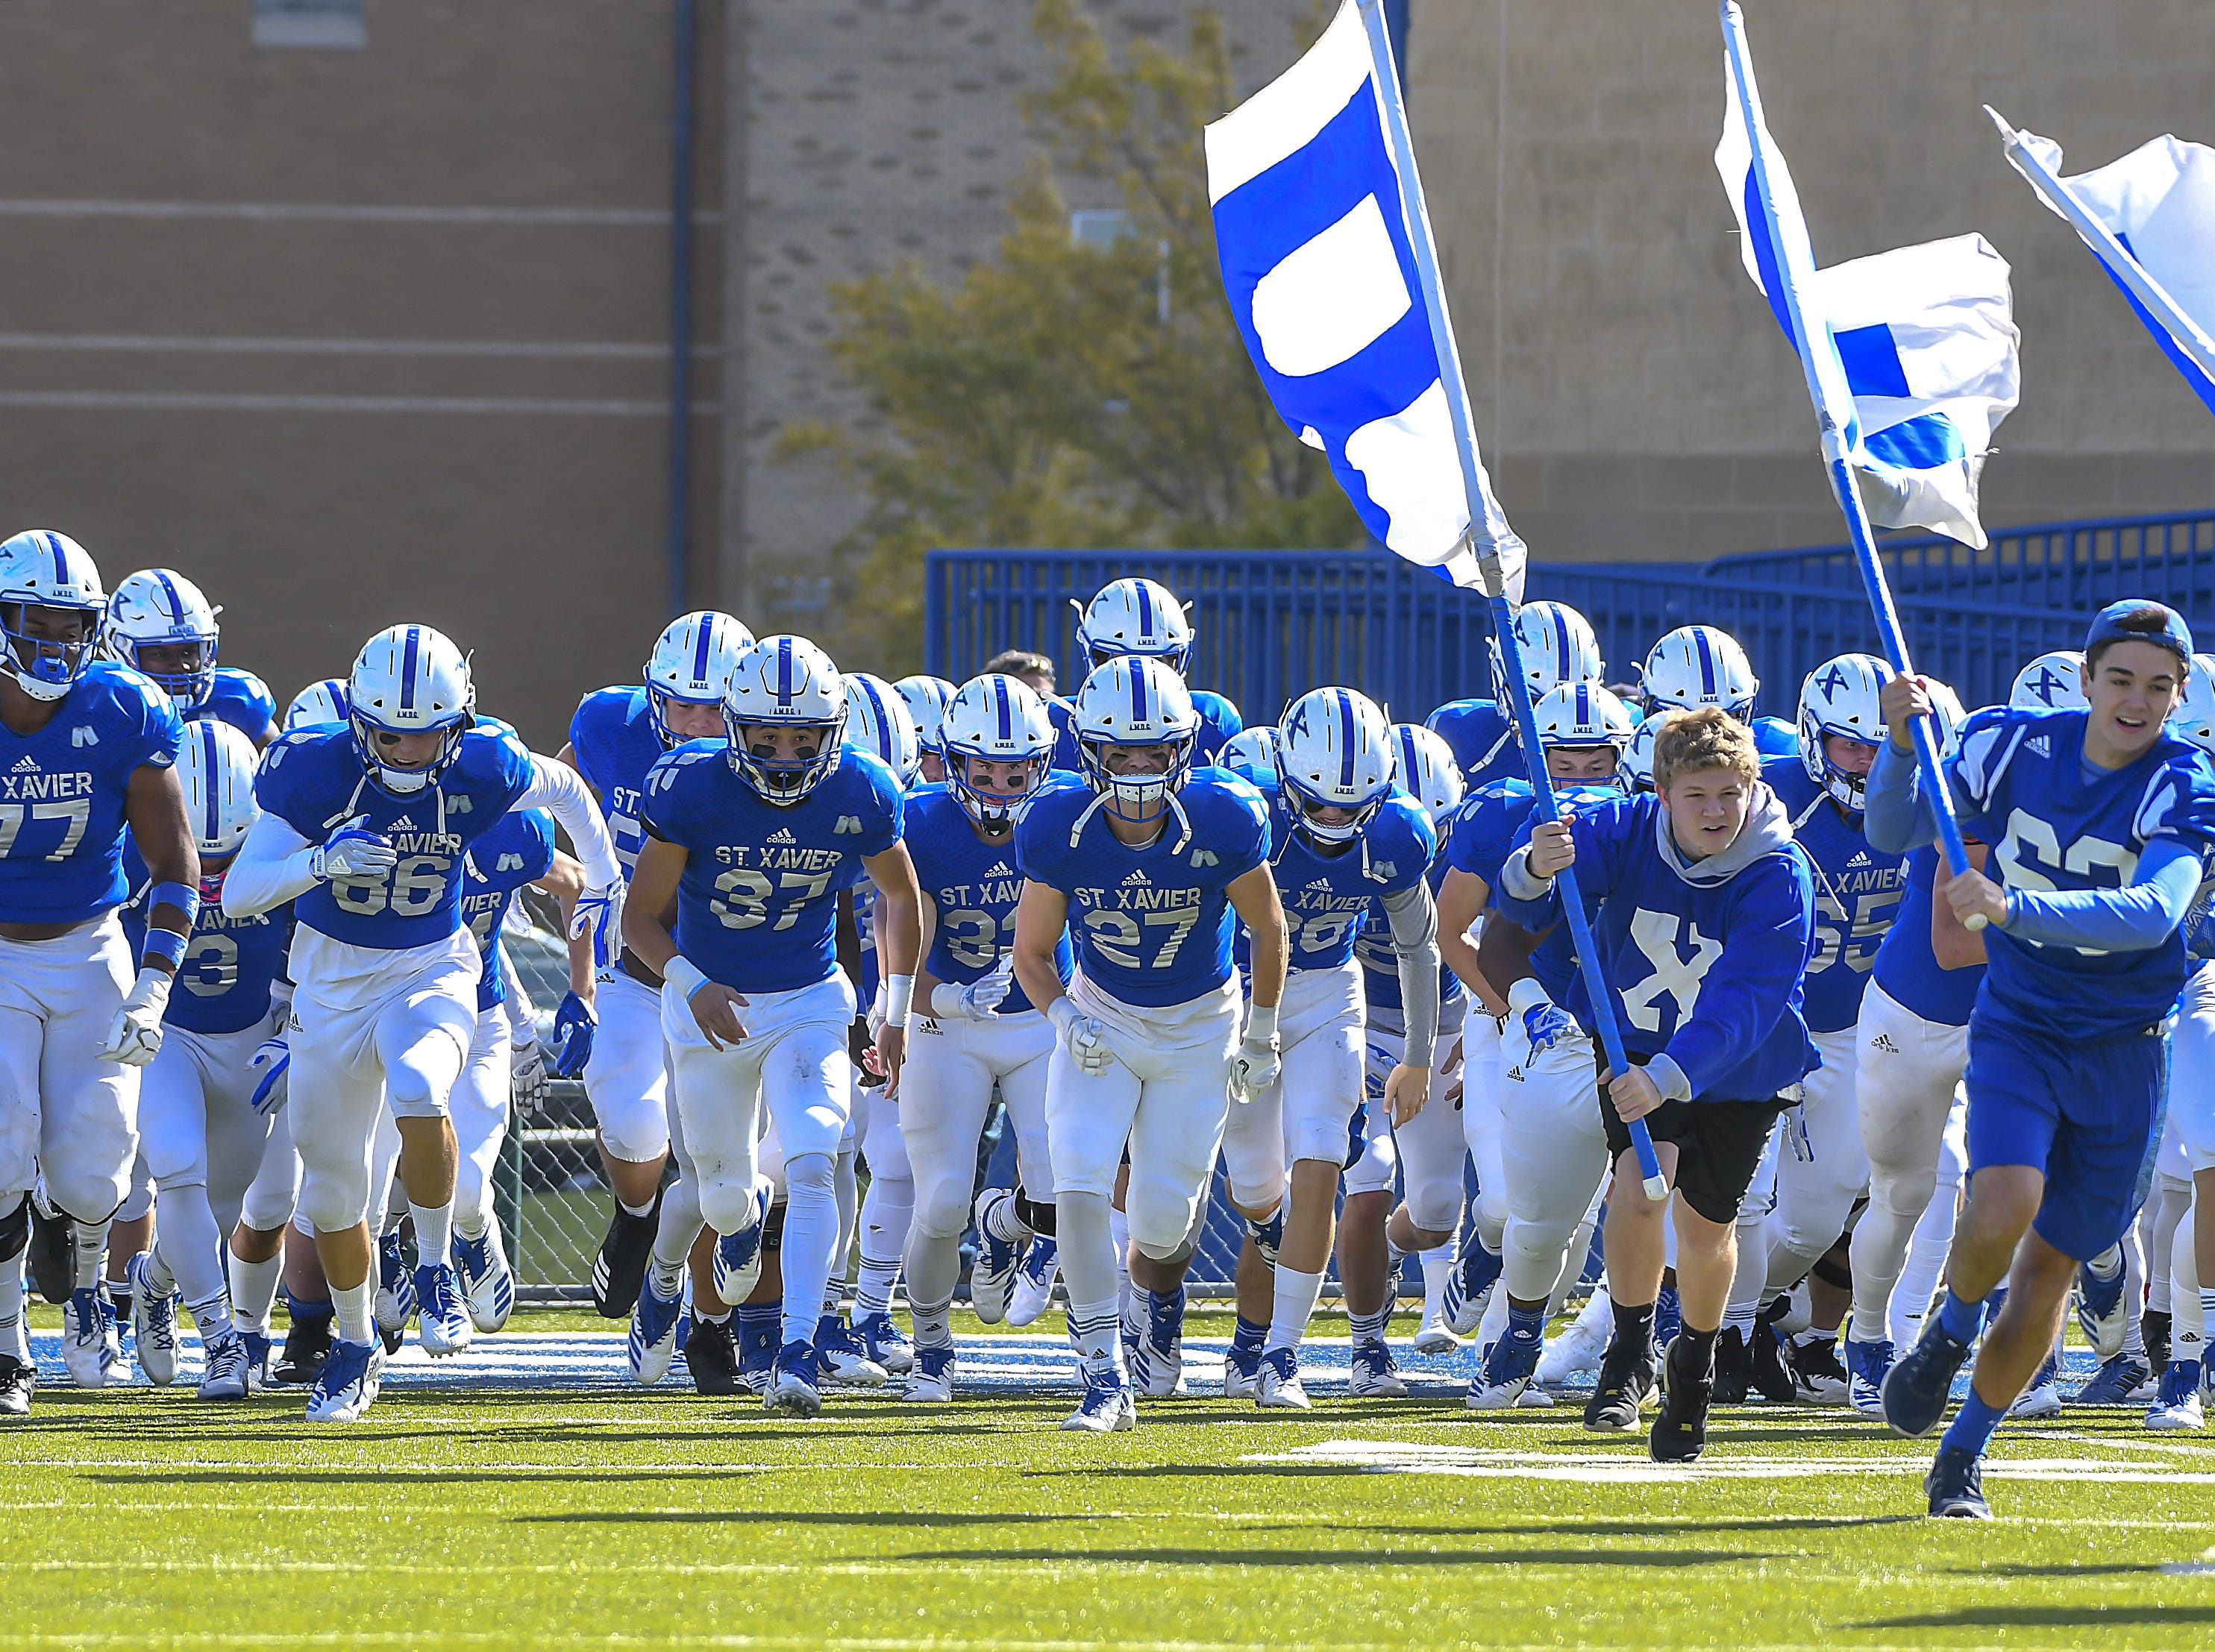 Bomber players run onto the field before their game against Cleveland St. Ignatius at St. Xavier High School, Saturday, October, 20 2018